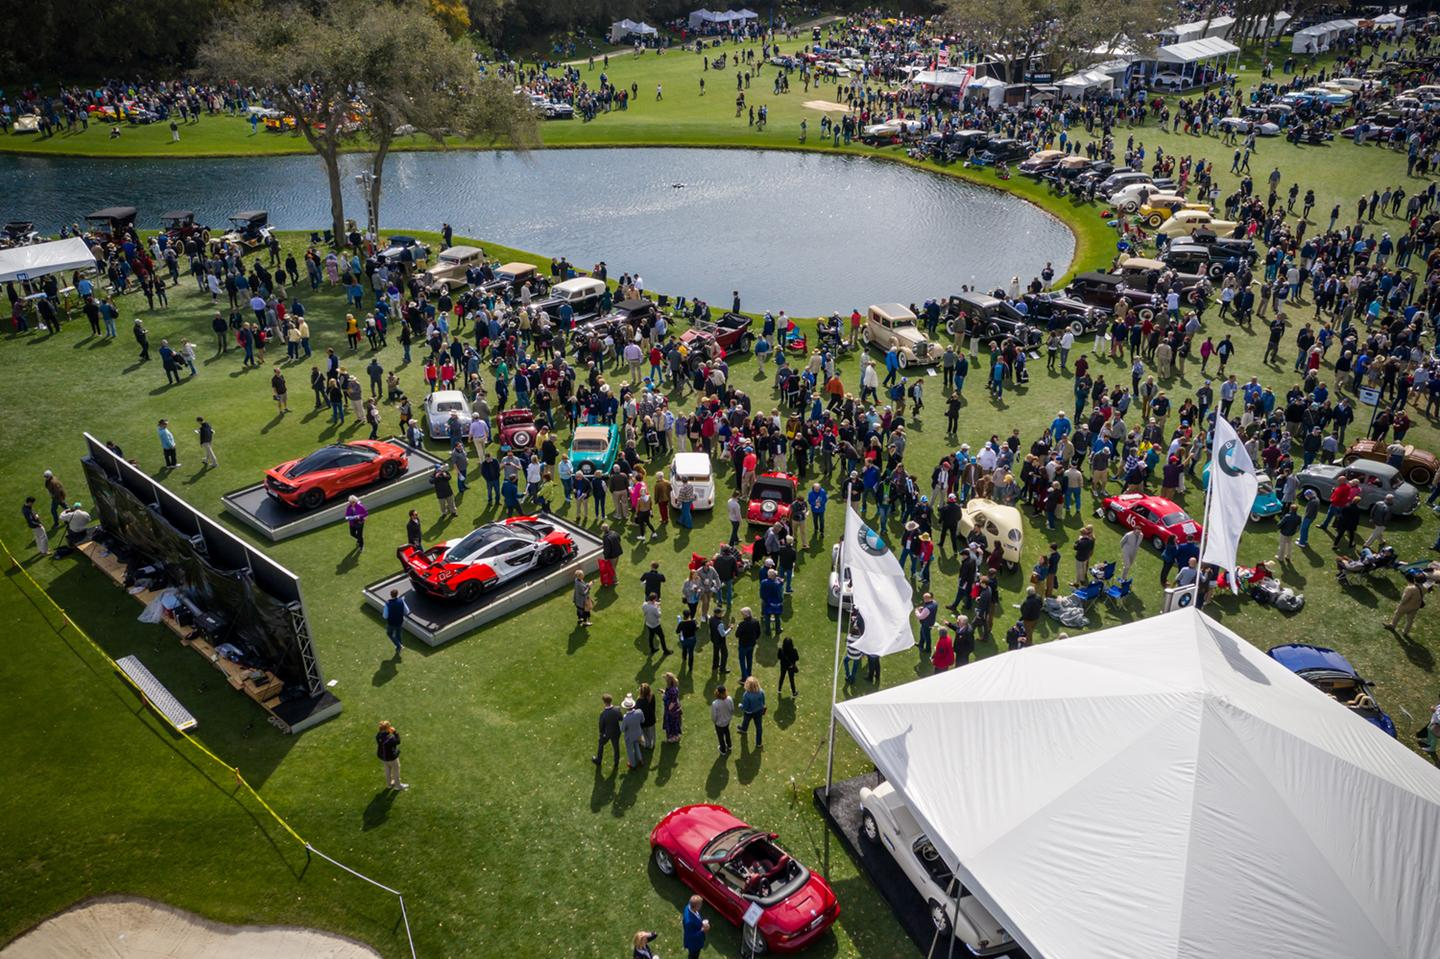 The 25th annual Amelia Island Concours d'Elegance was held on March 8, 2020 on the fairways of the Golf Club of Amelia Island